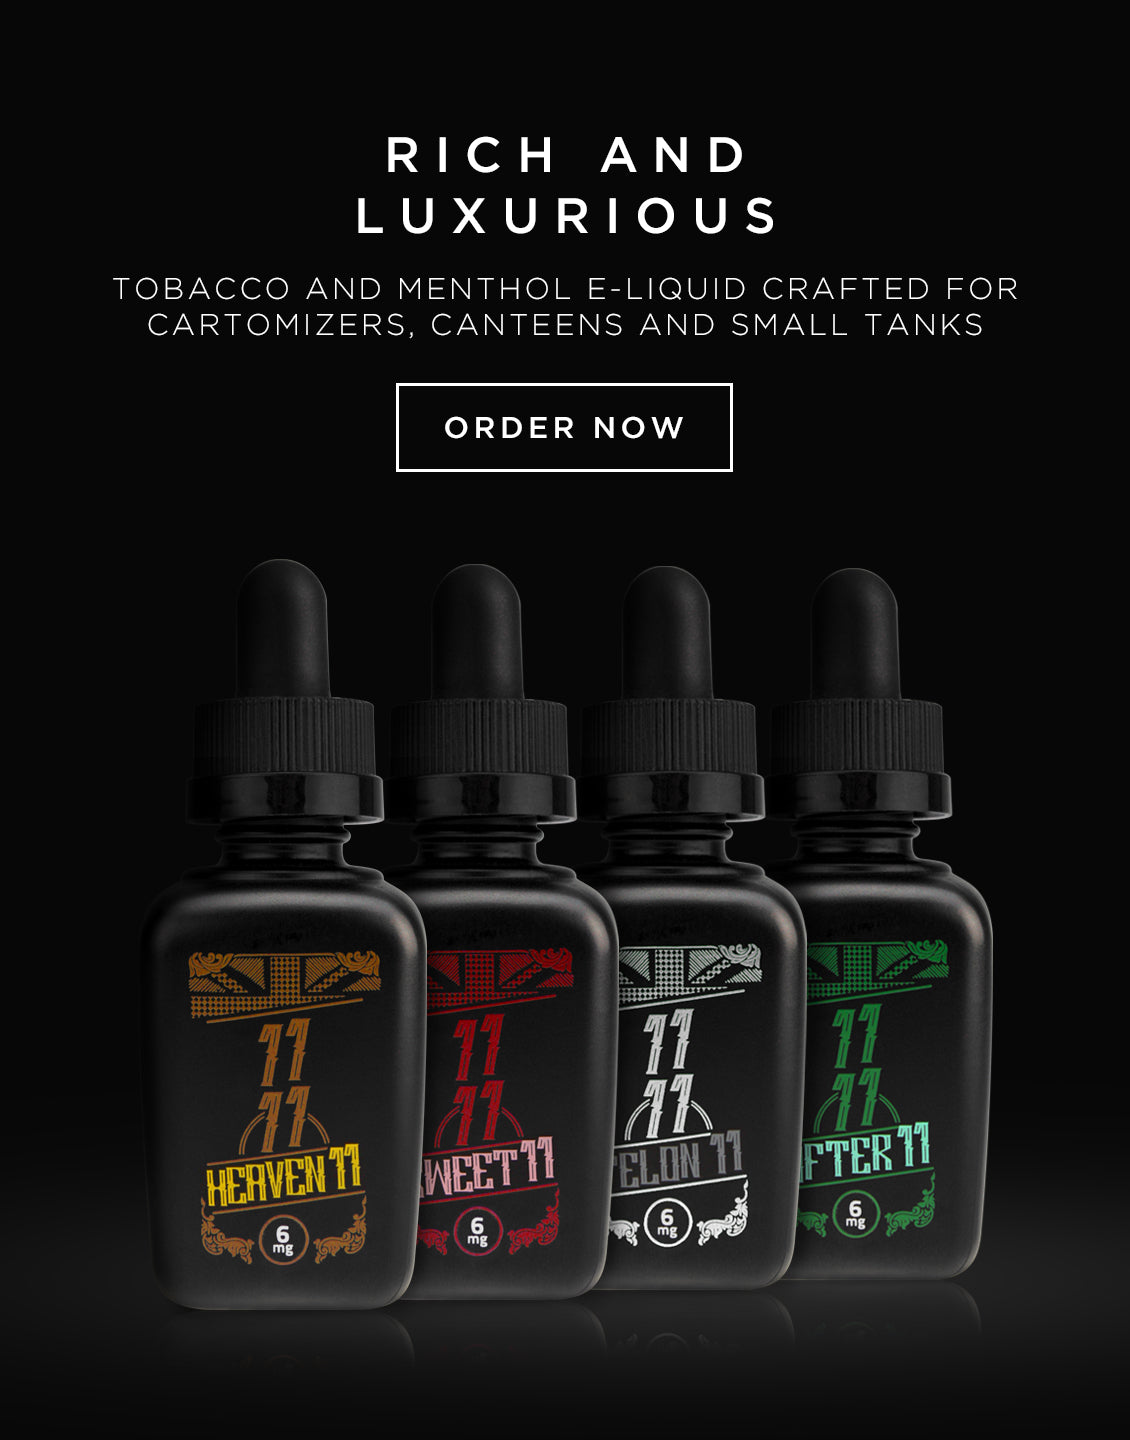 Rich and Luxurious Tobacco and Menthol E-liquid. Order now: